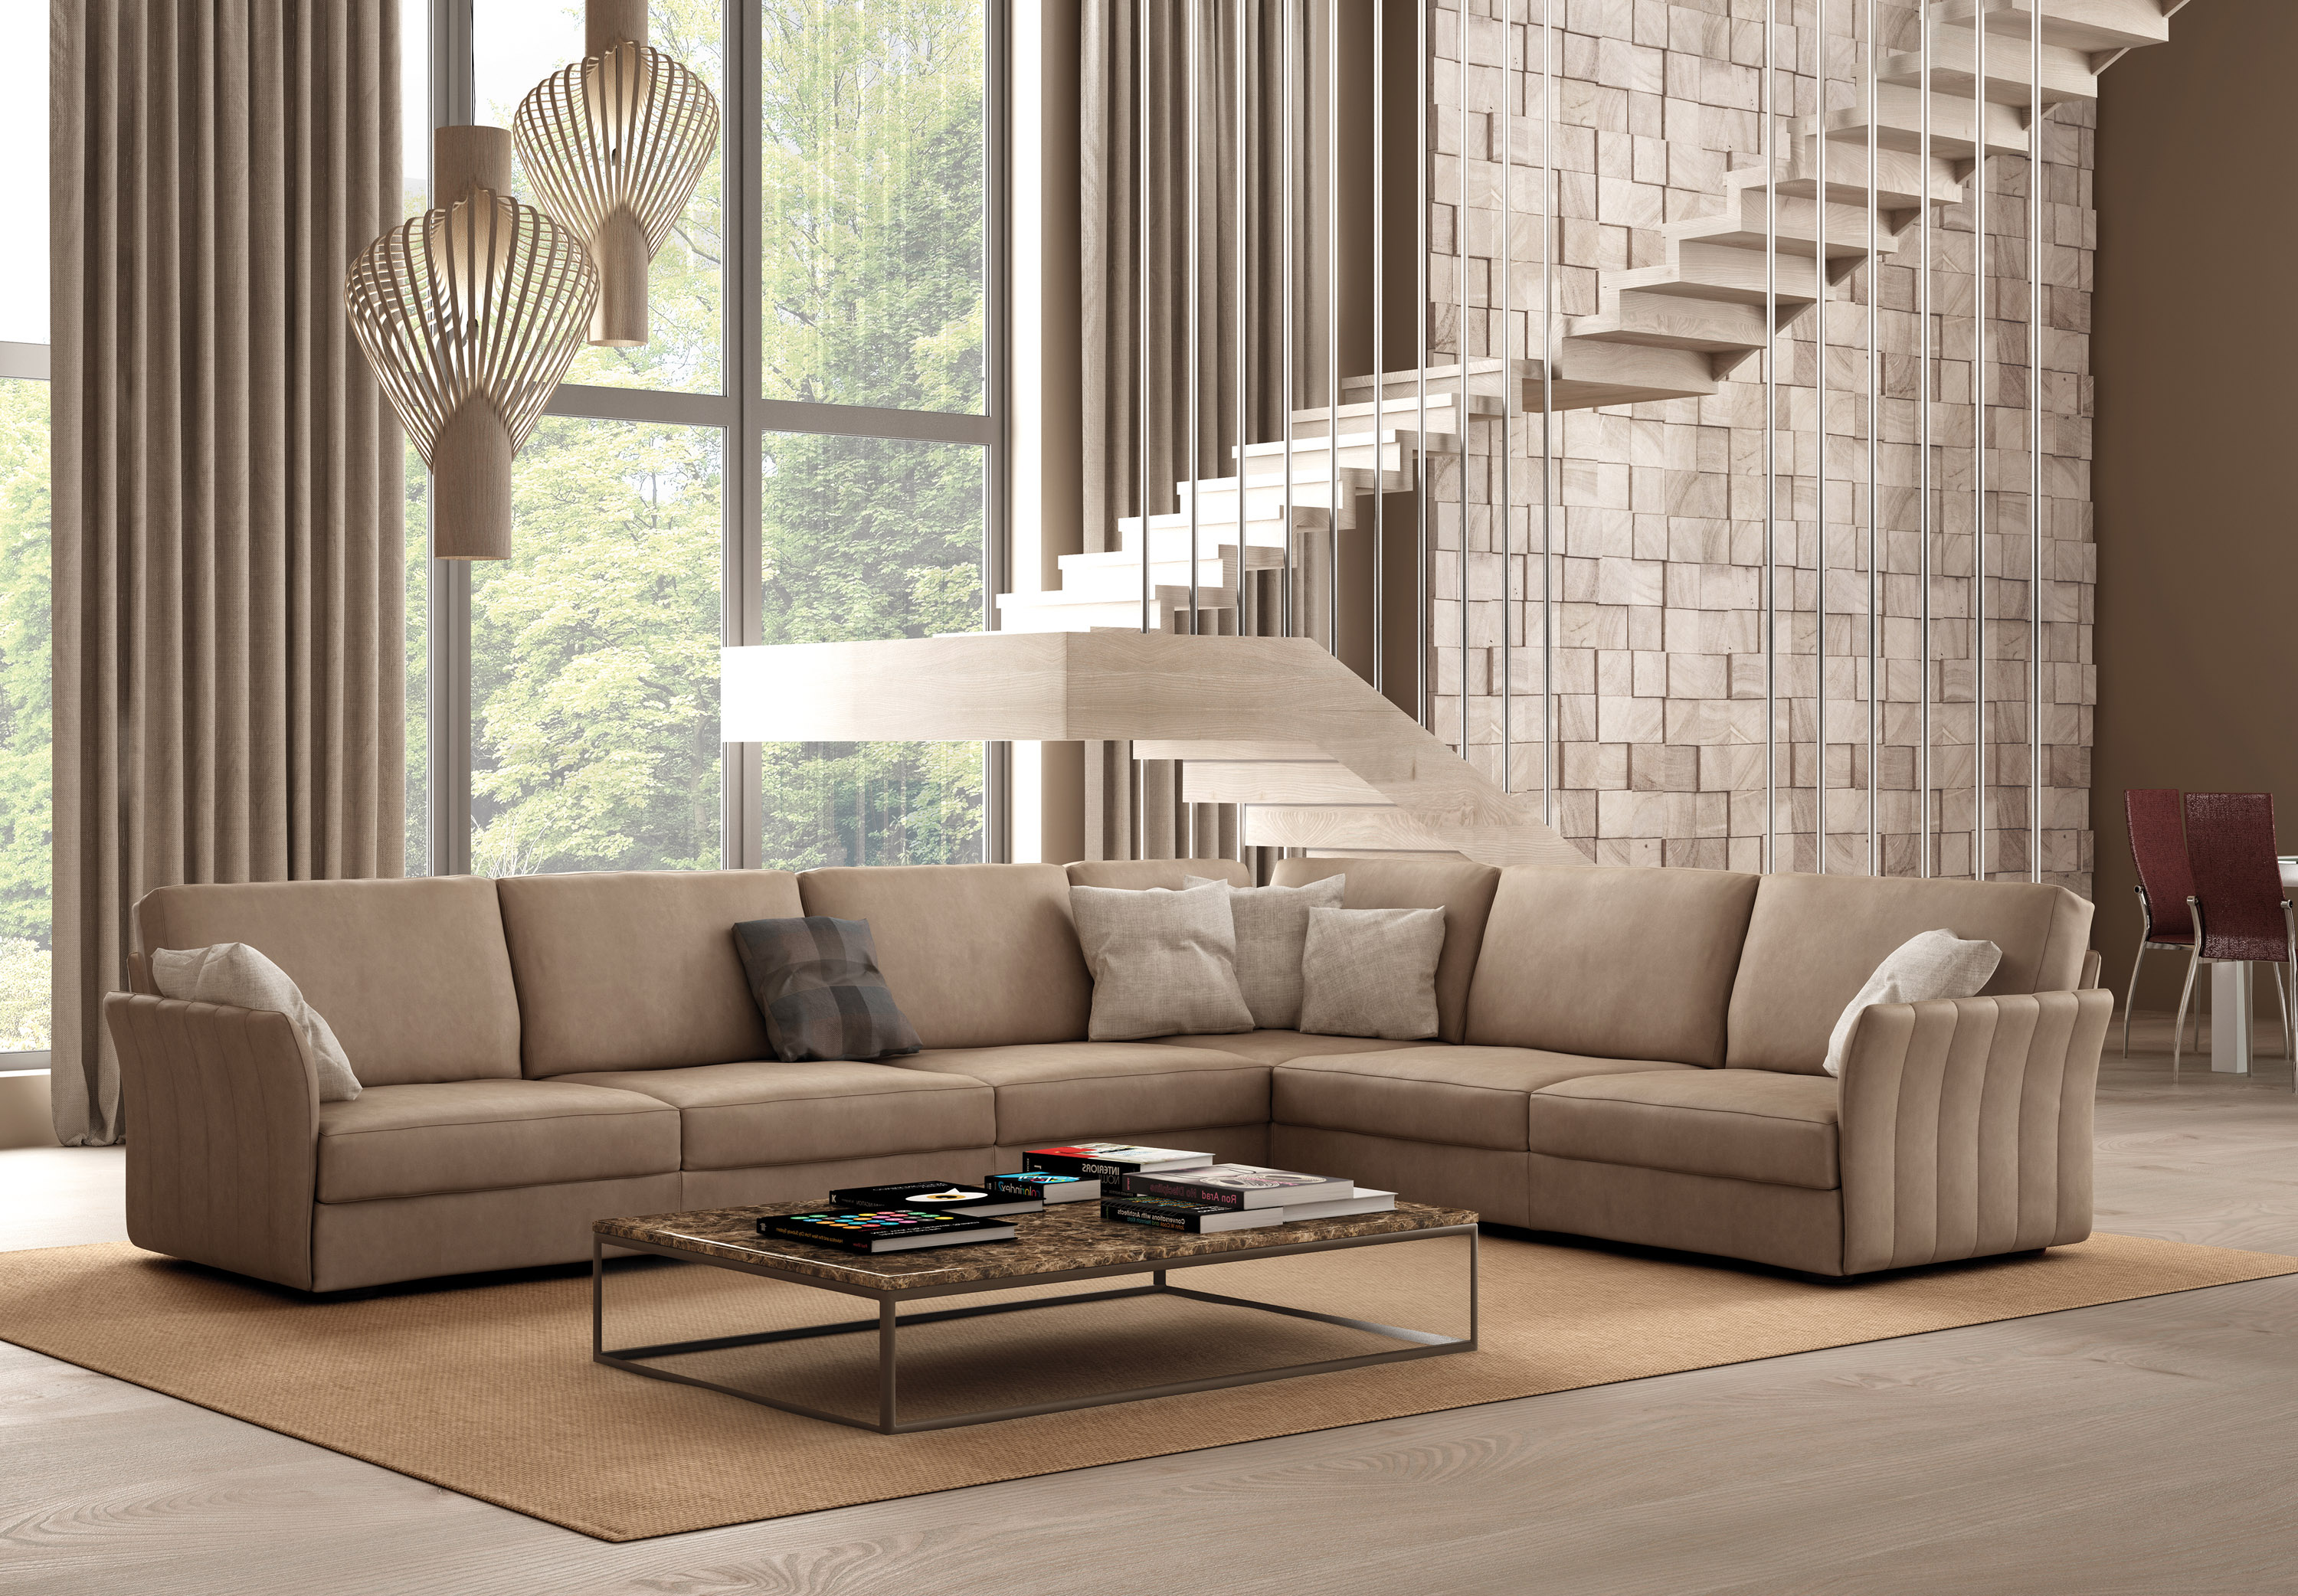 Modern Luxury Sectional Sofas Luxury Leather Sectional Sofas Luxury Modern Leather Sofa